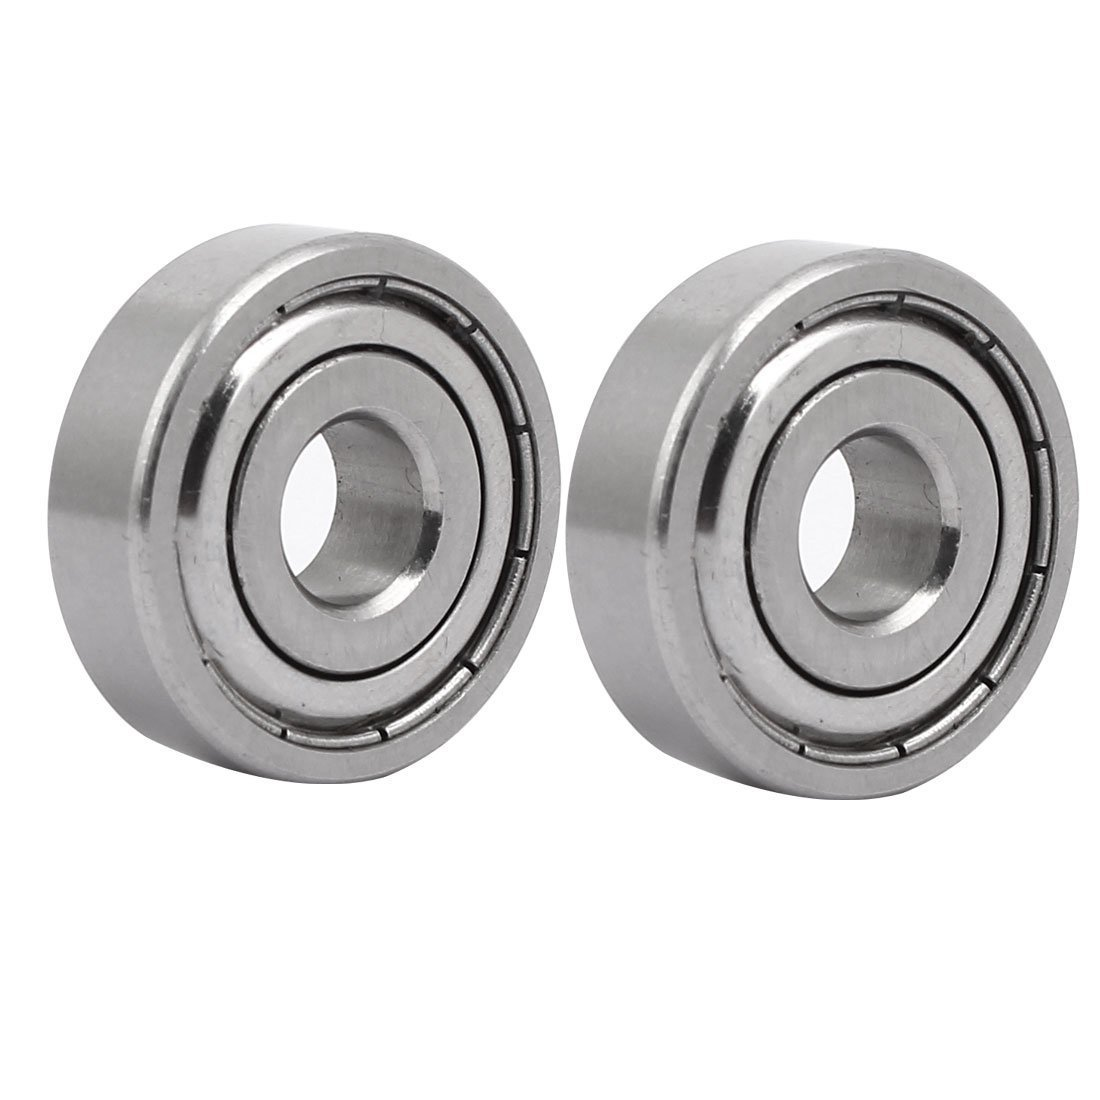 Sourcingmap 6200 30mmx10mmx9mm Stainless Steel Shielded Deep Groove Radial Ball Bearing 2pcs